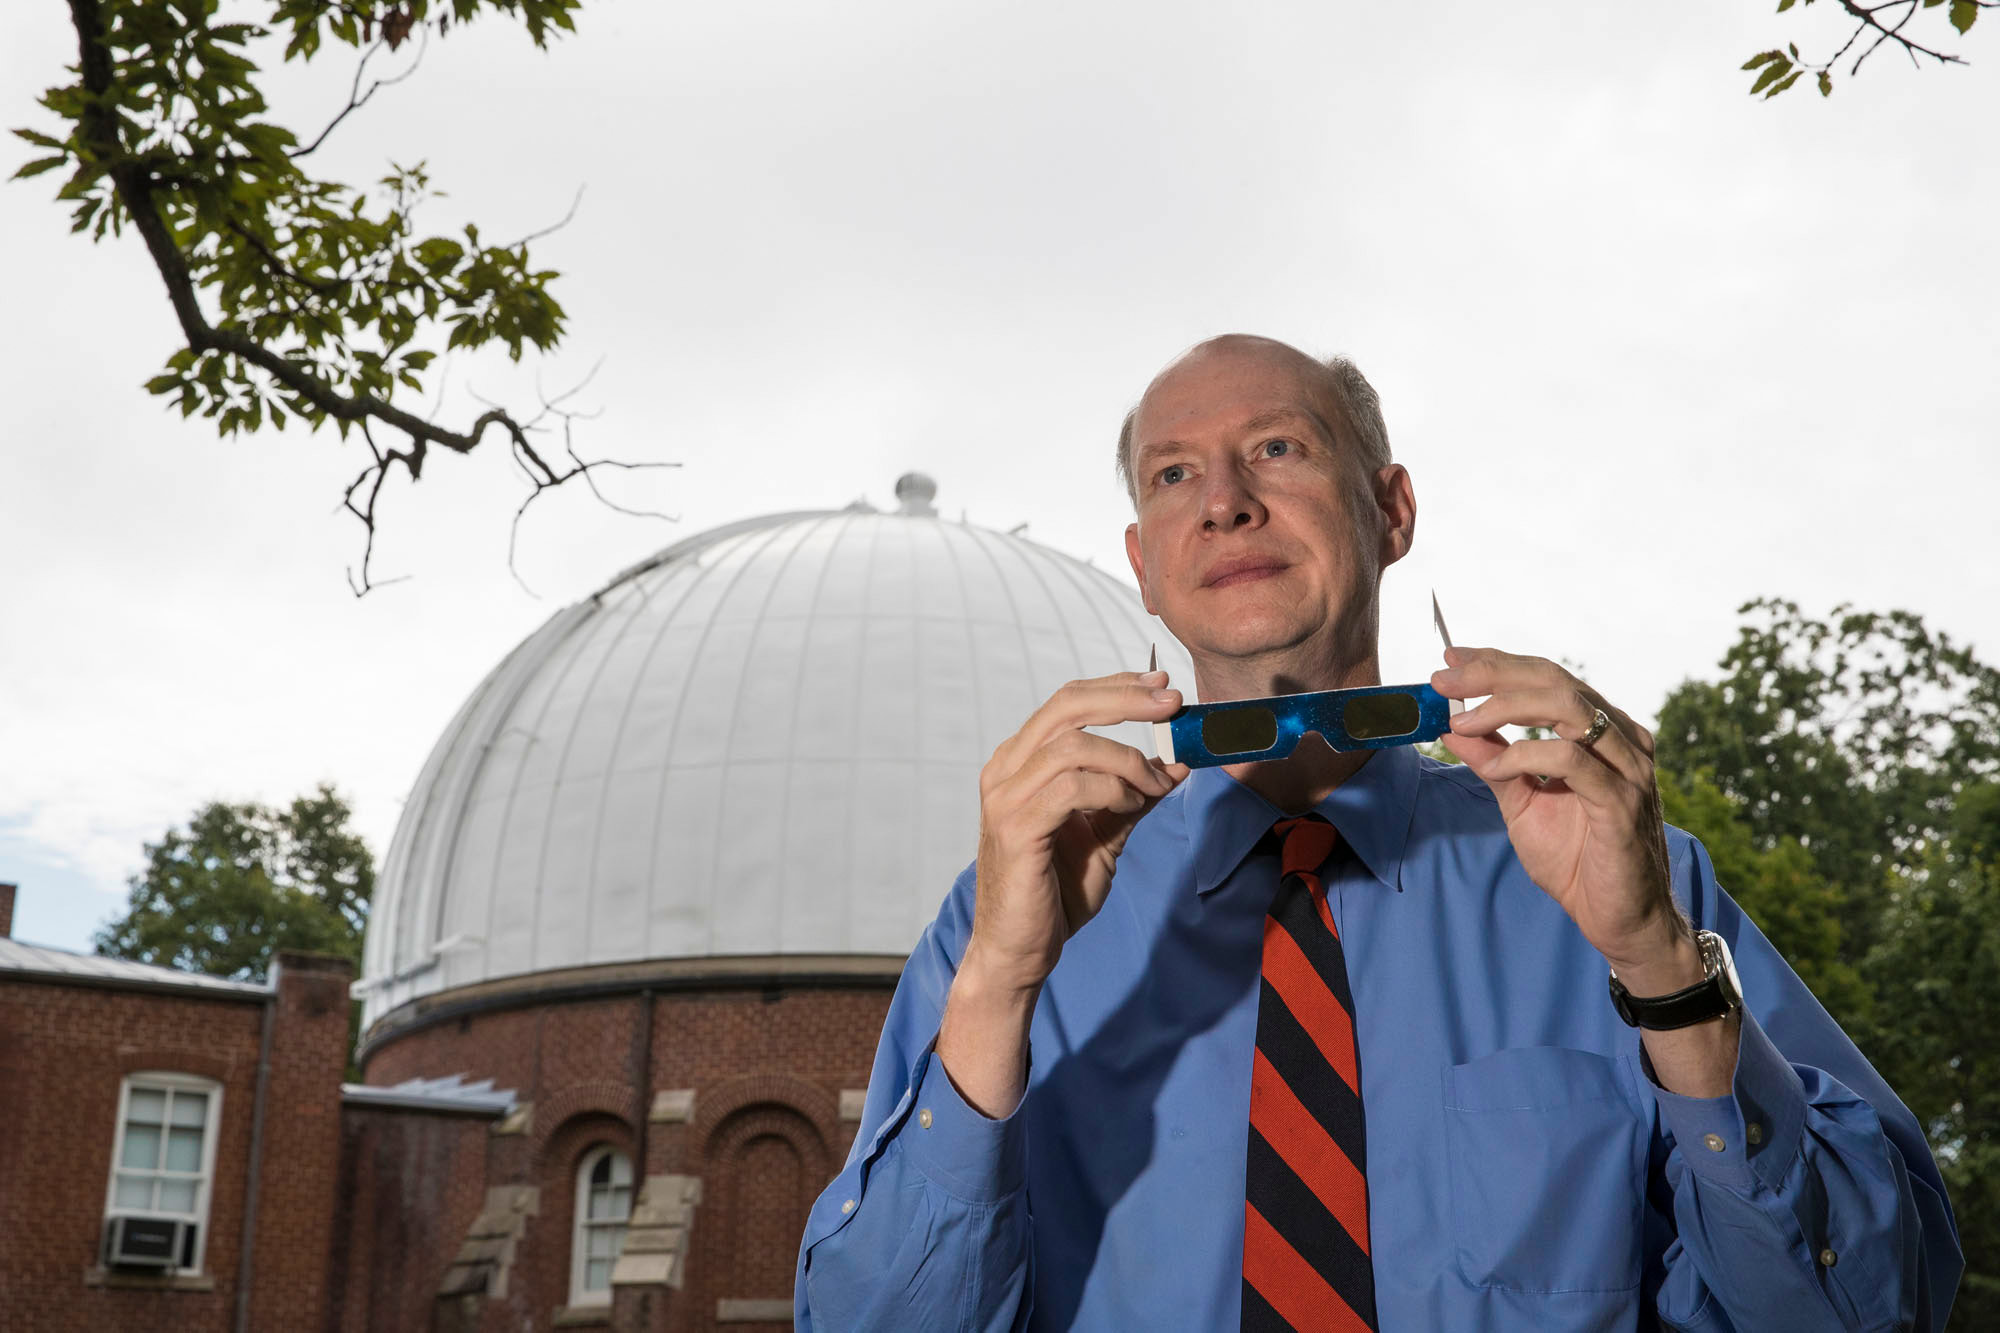 Astronomer Ed Murphy with a pair of certified solar eclipse glasses. On Monday, he will serve as a scientific consultant at a public viewing event in South Carolina.